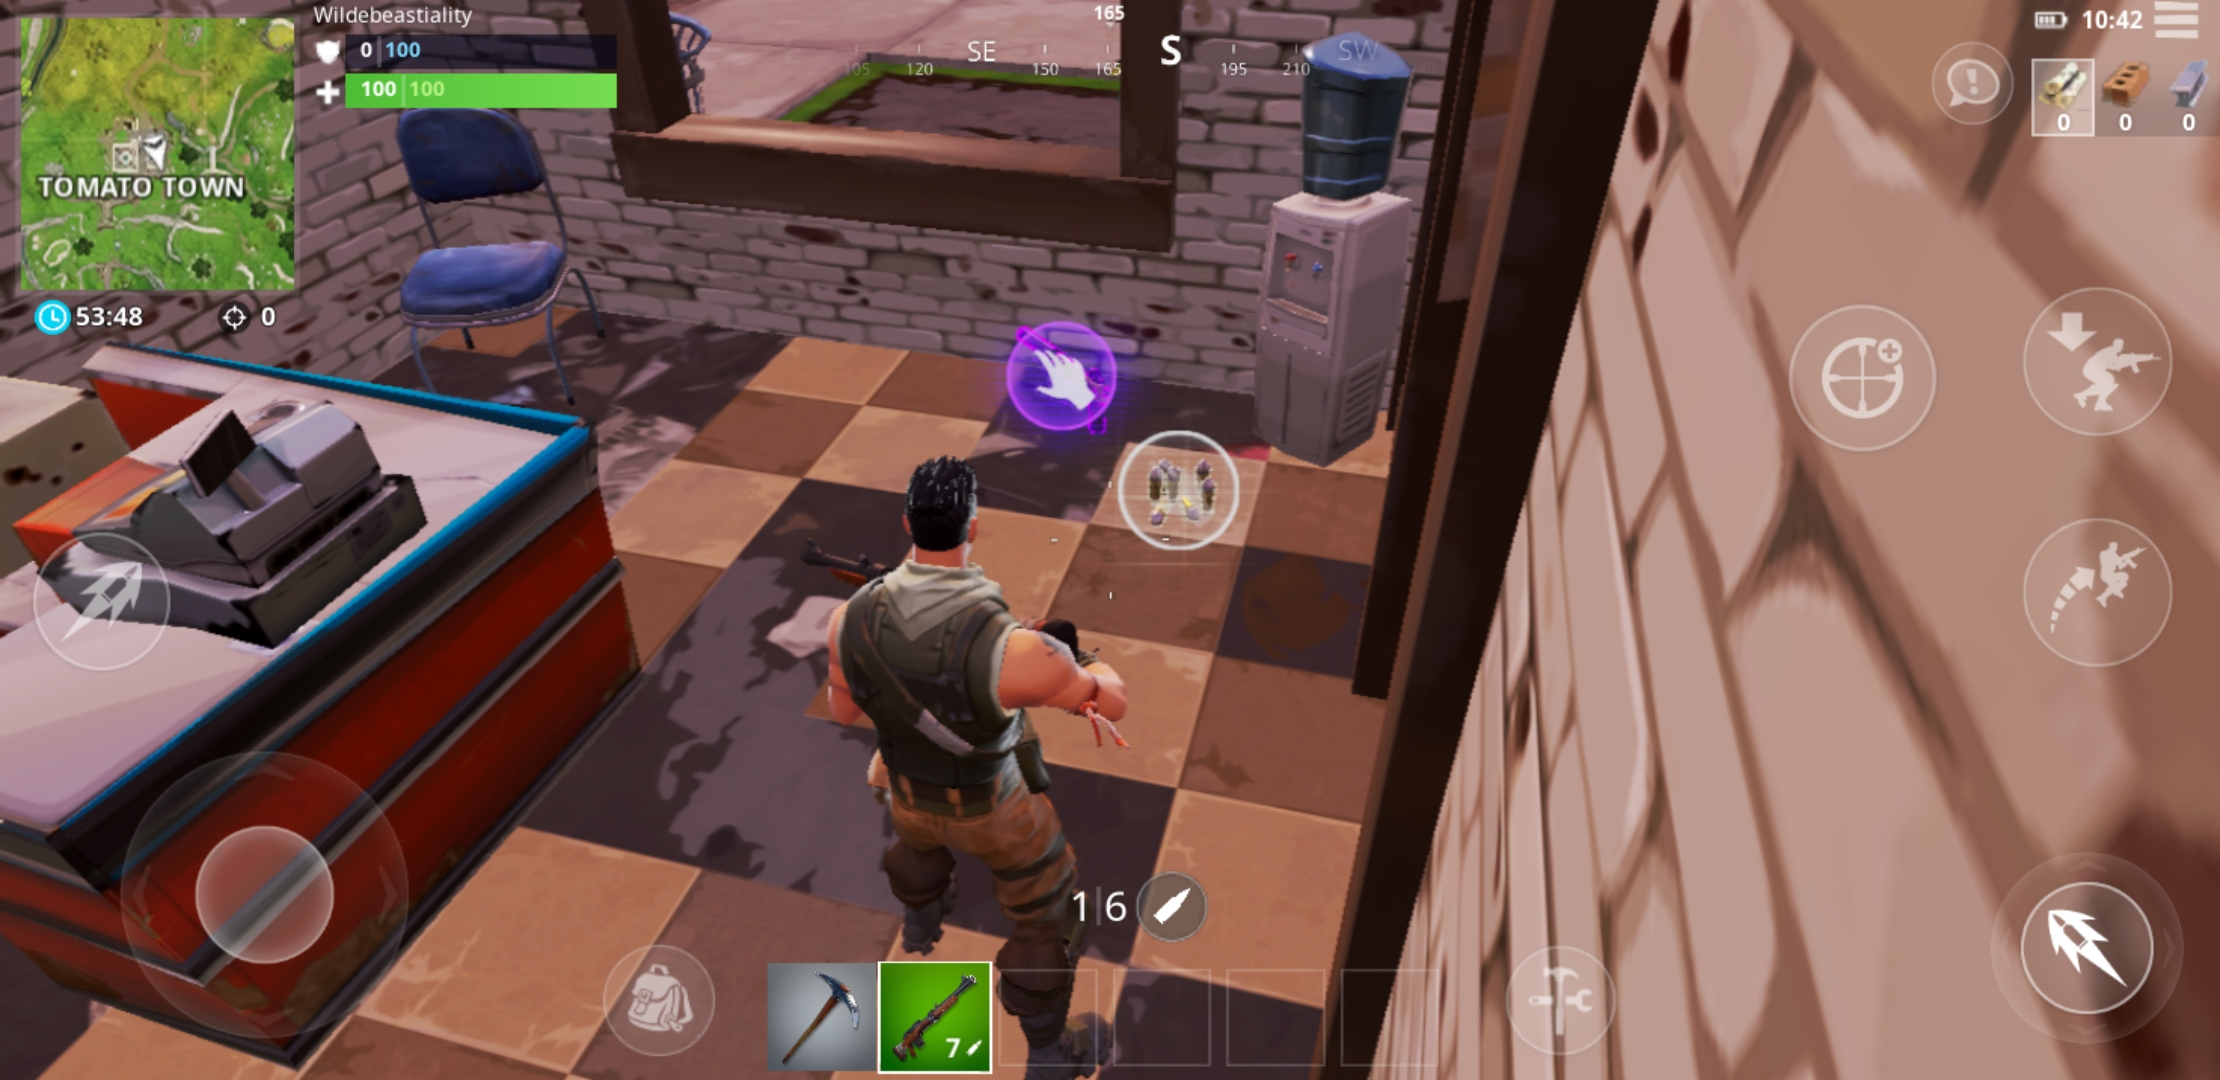 Hands-on: Fortnite finally arrives on Android, here's what you need